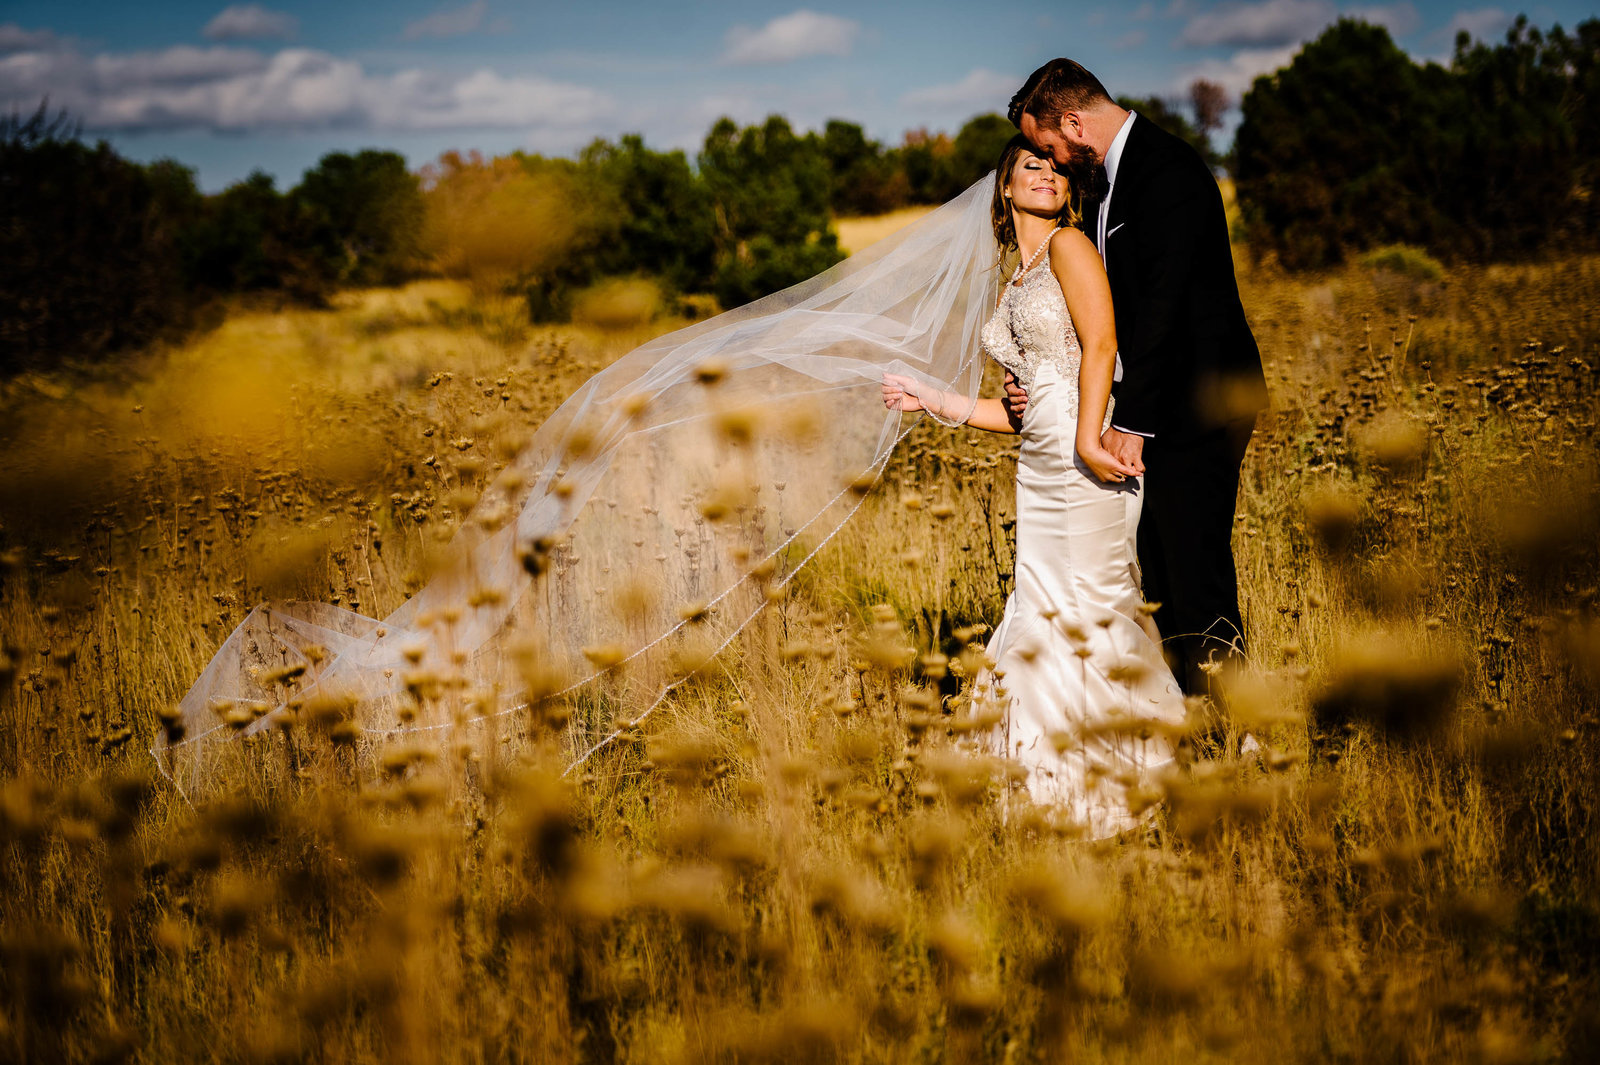 289-El-paso-wedding-photographer-ArKe_0558